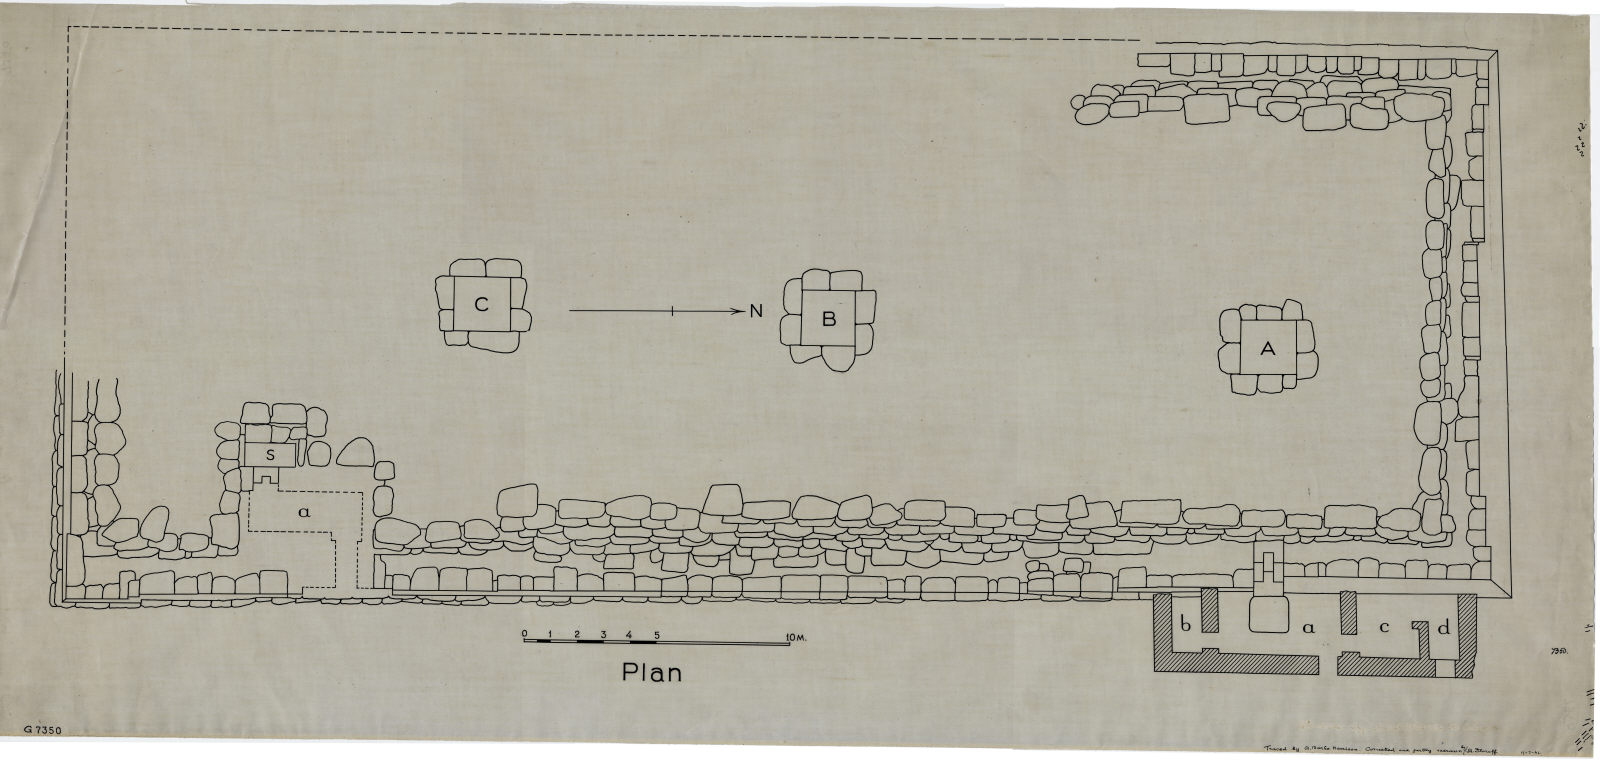 Maps and plans: G 7350, Plan